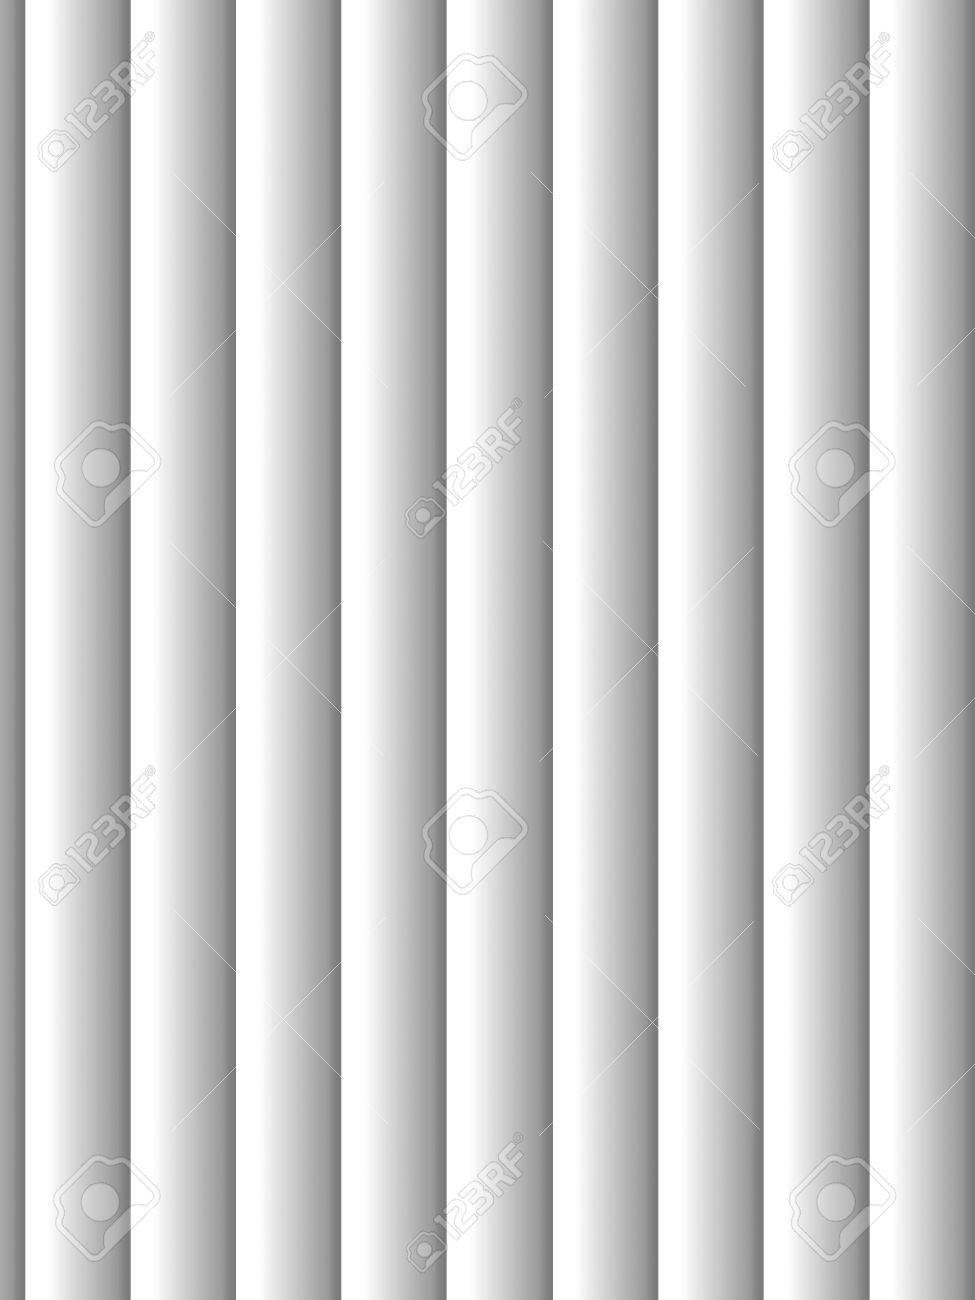 gray vertical blinds blackout gray vertical blinds as backdrop or background with sunlight stock photo 5557808 vertical blinds as backdrop or background with sunlight